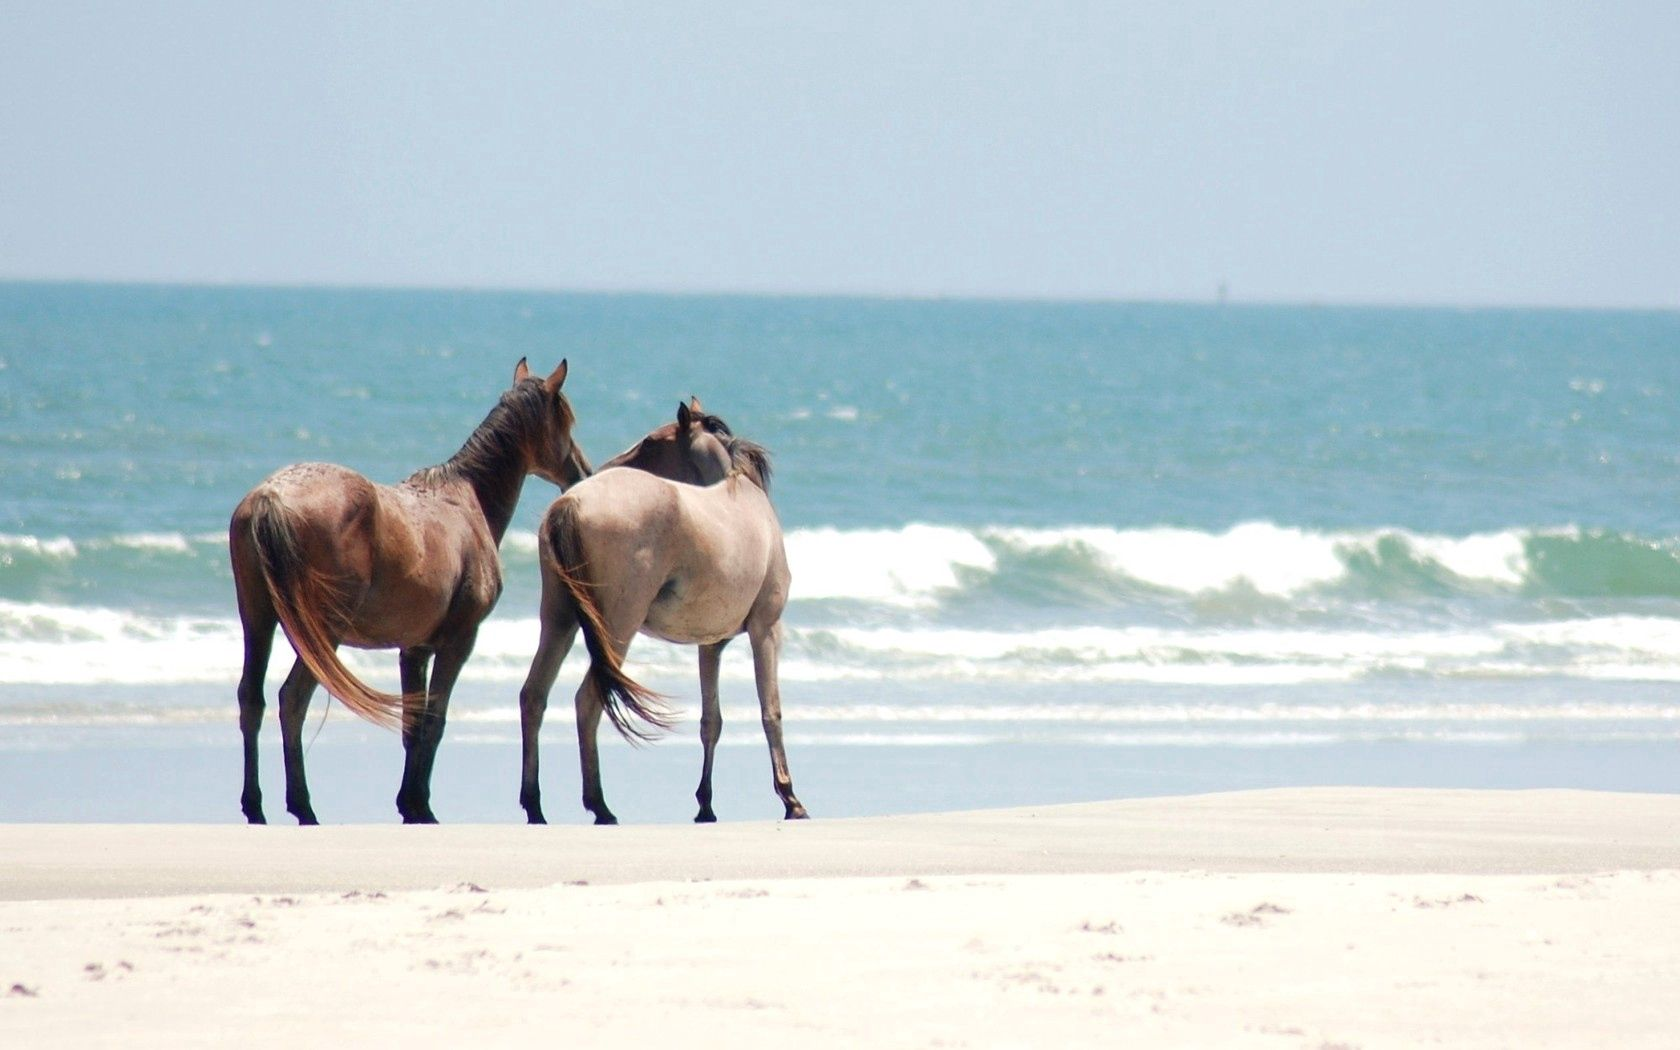 122595 download wallpaper Animals, Horses, Stroll, Shore, Bank, Sand, Sea screensavers and pictures for free